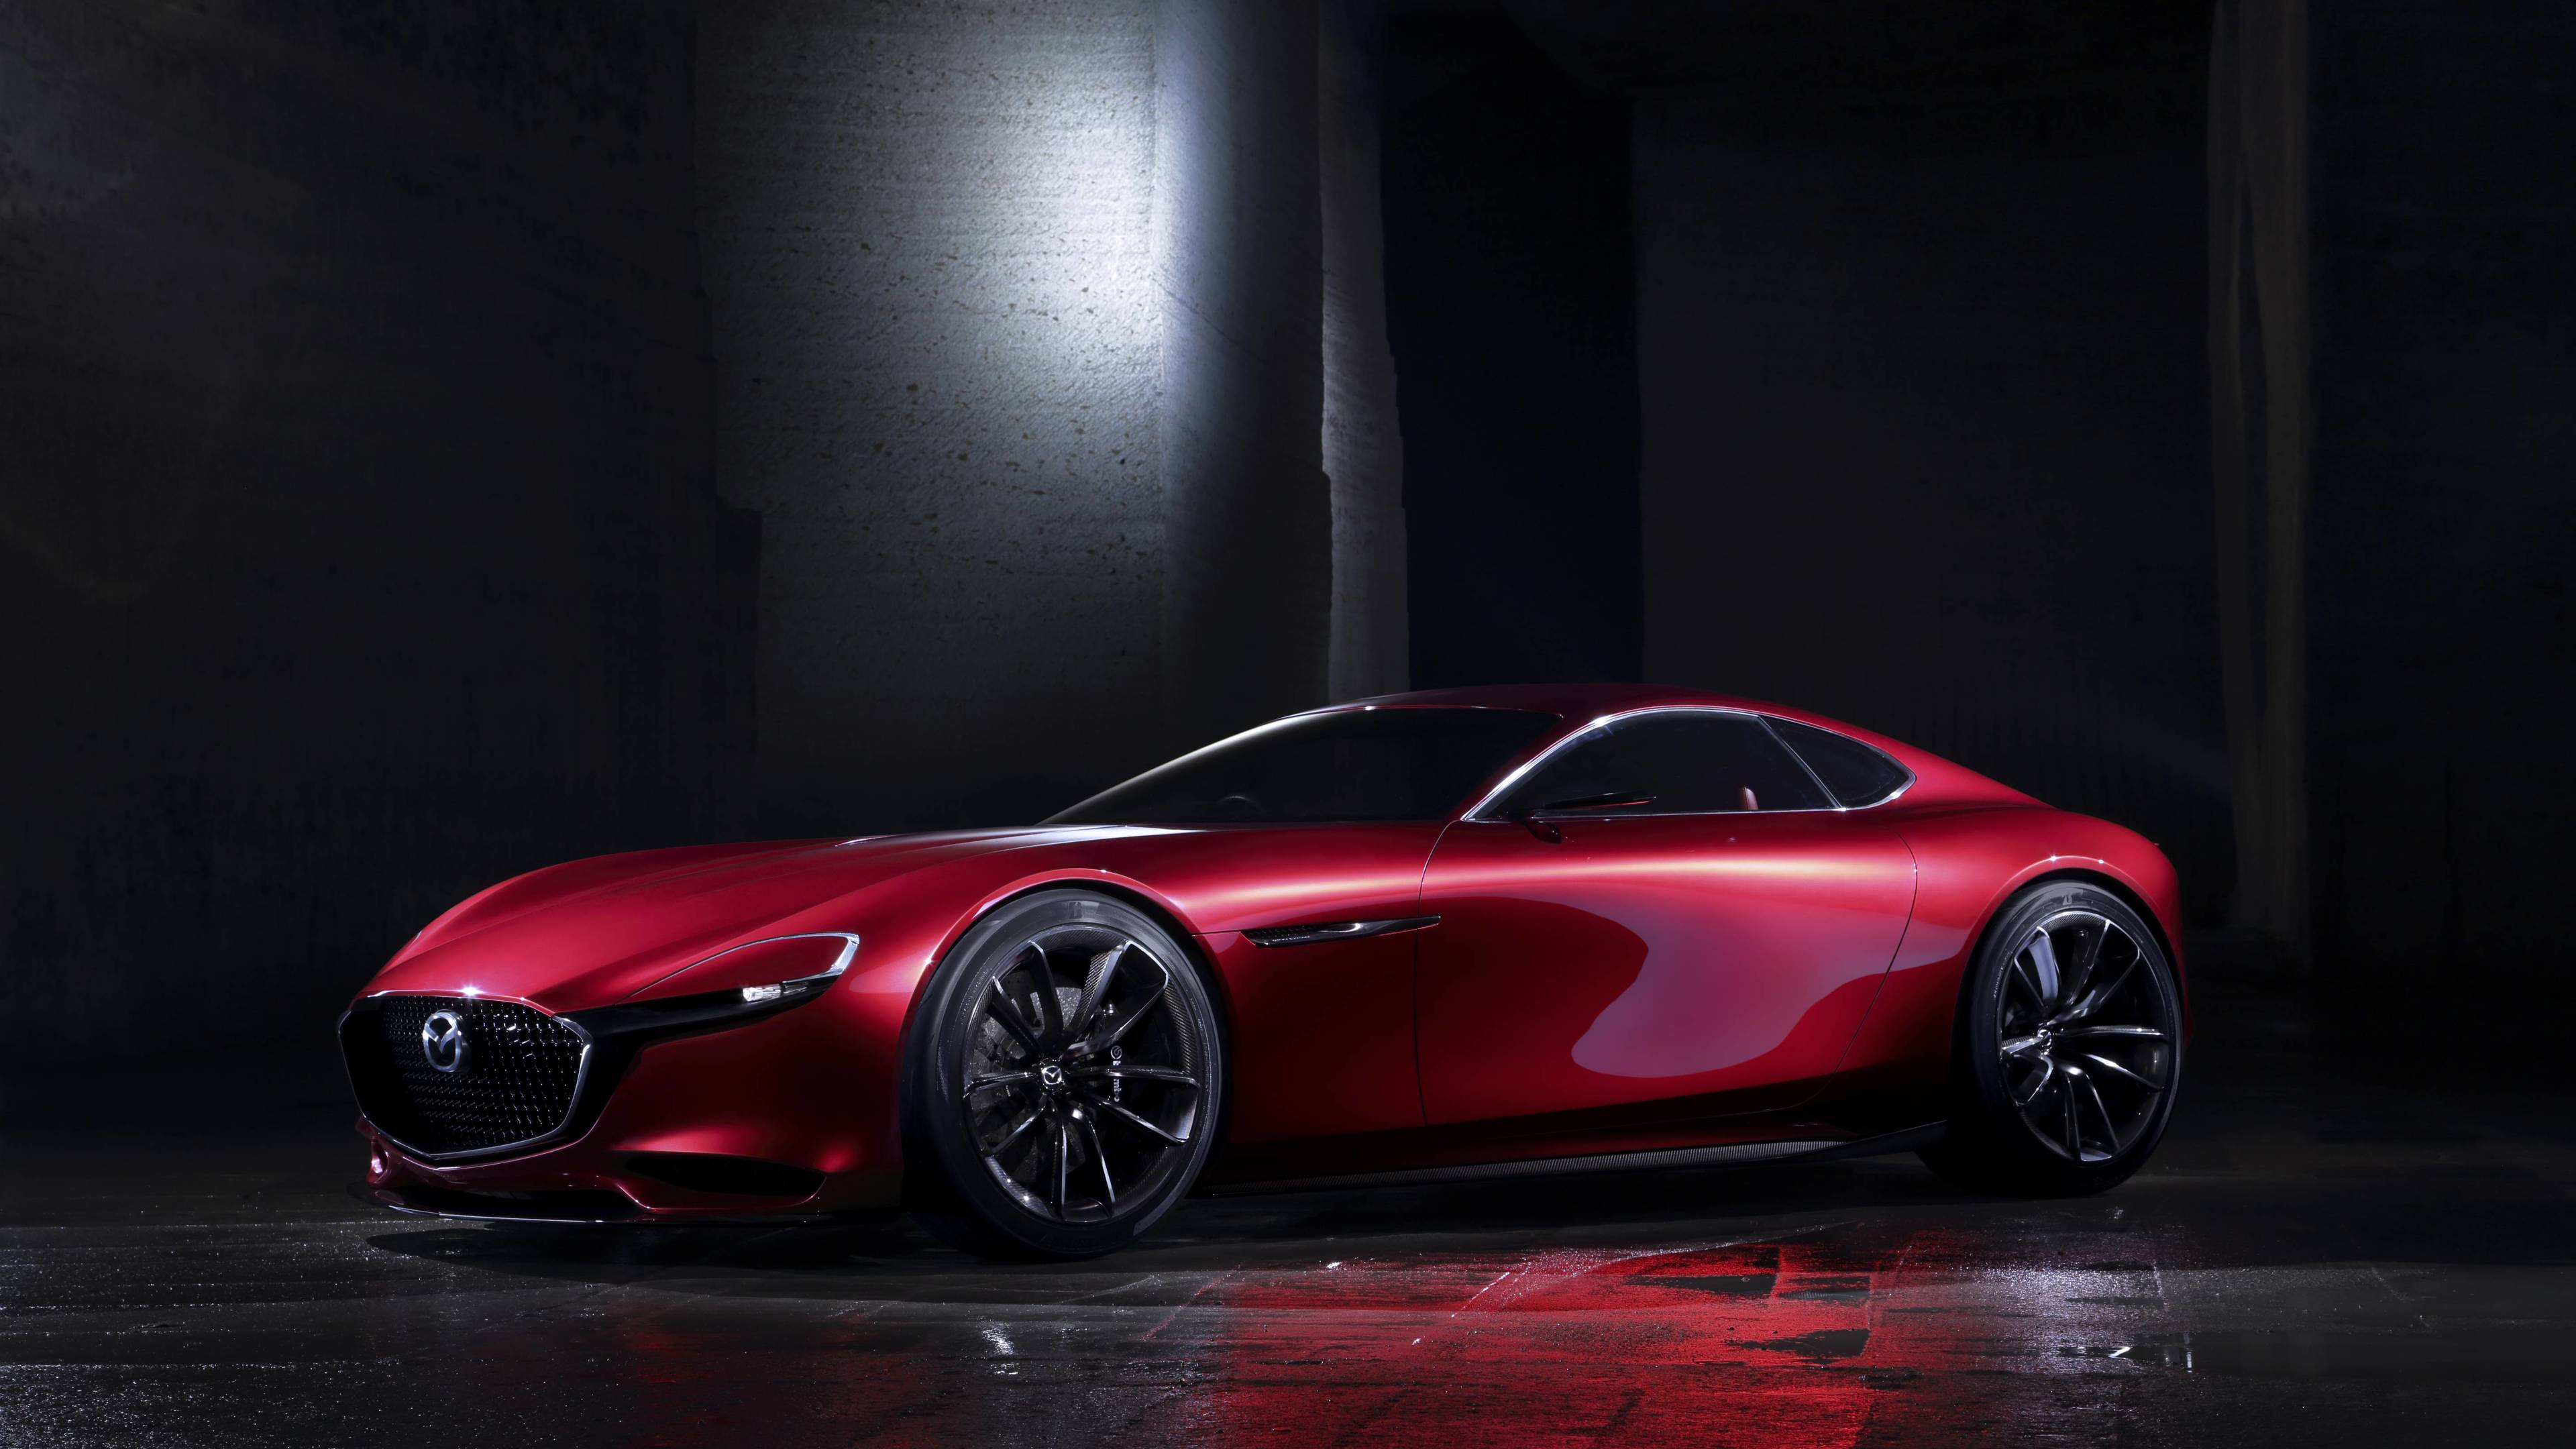 mazda rx vision 1539104959 - Mazda RX Vision - mazda wallpapers, hd-wallpapers, concept wallpapers, cars wallpapers, 4k-wallpapers, 2017 cars wallpapers